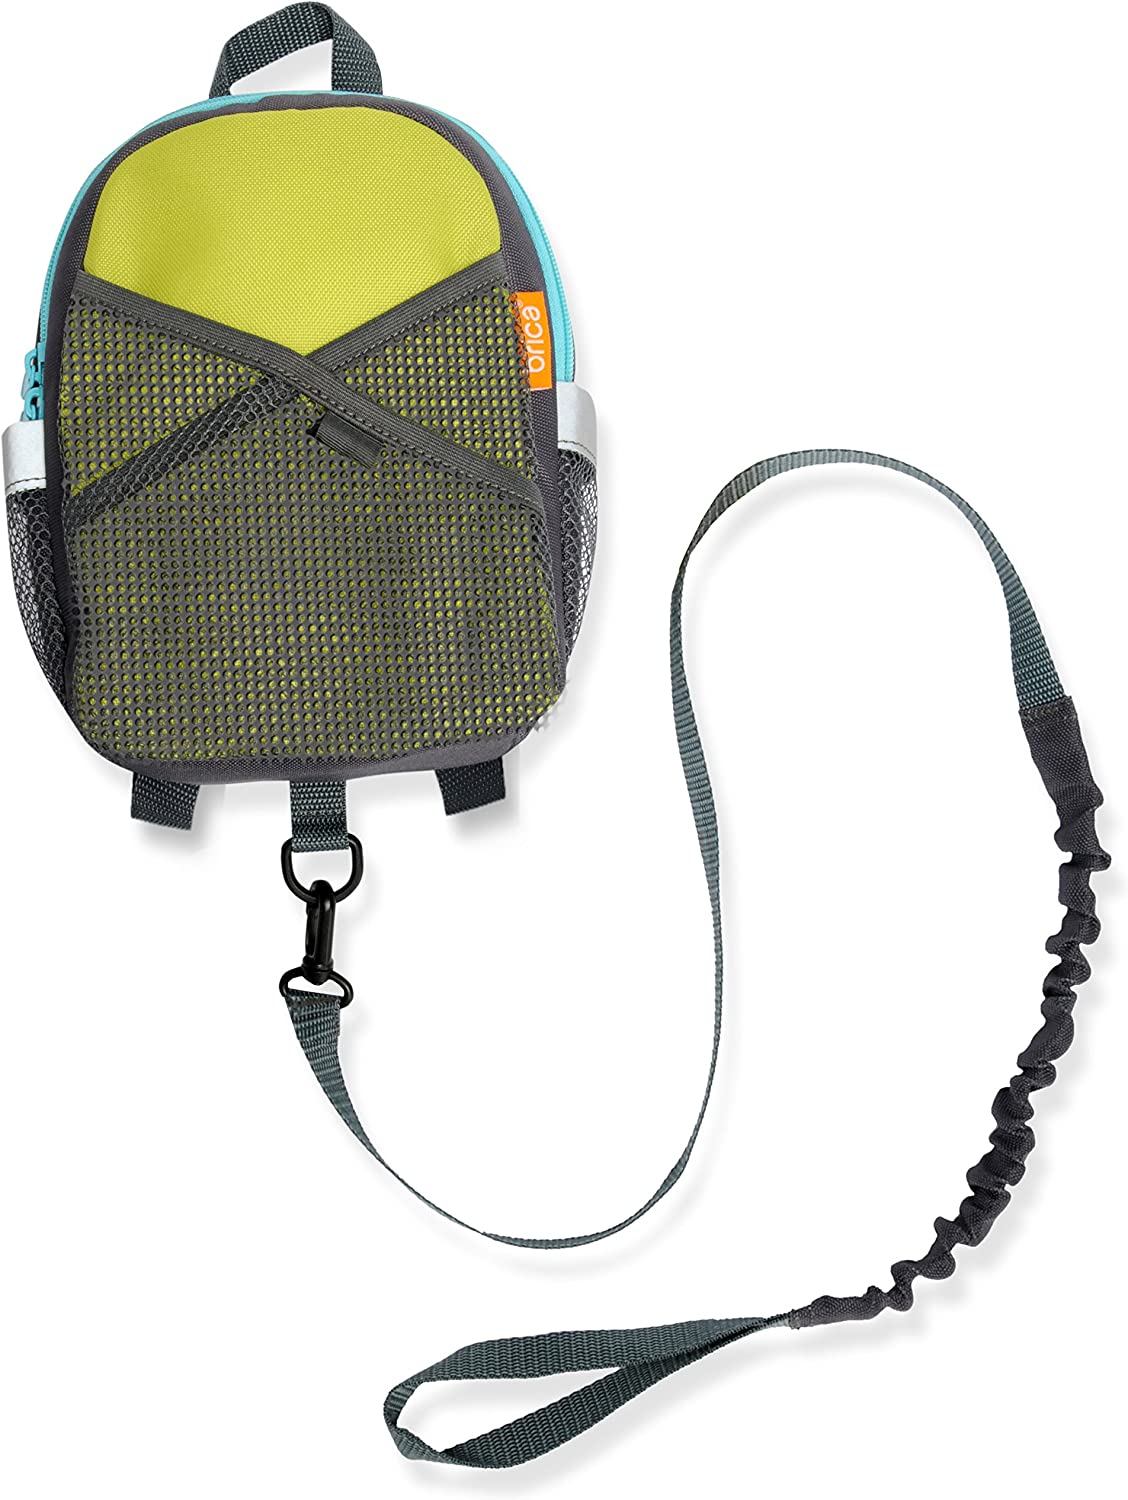 BRICA ByMySide Safety Harness Backpack, Green bluee